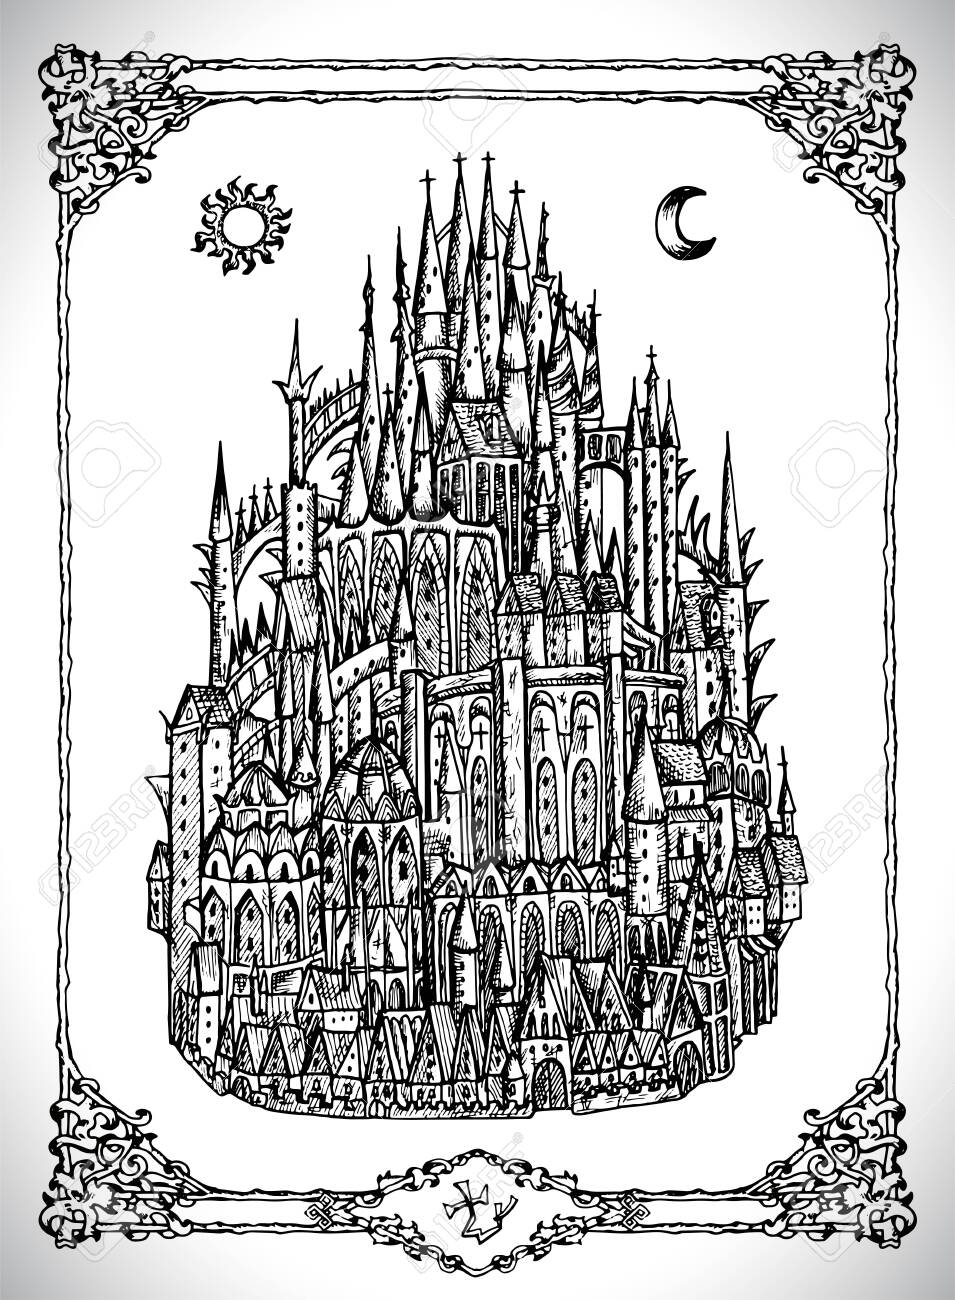 Castle Line Drawing : castle, drawing, Mediaval, Castle, Witth, Towers., Vector, Mystic.., Royalty, Cliparts,, Vectors,, Stock, Illustration., Image, 129309018.